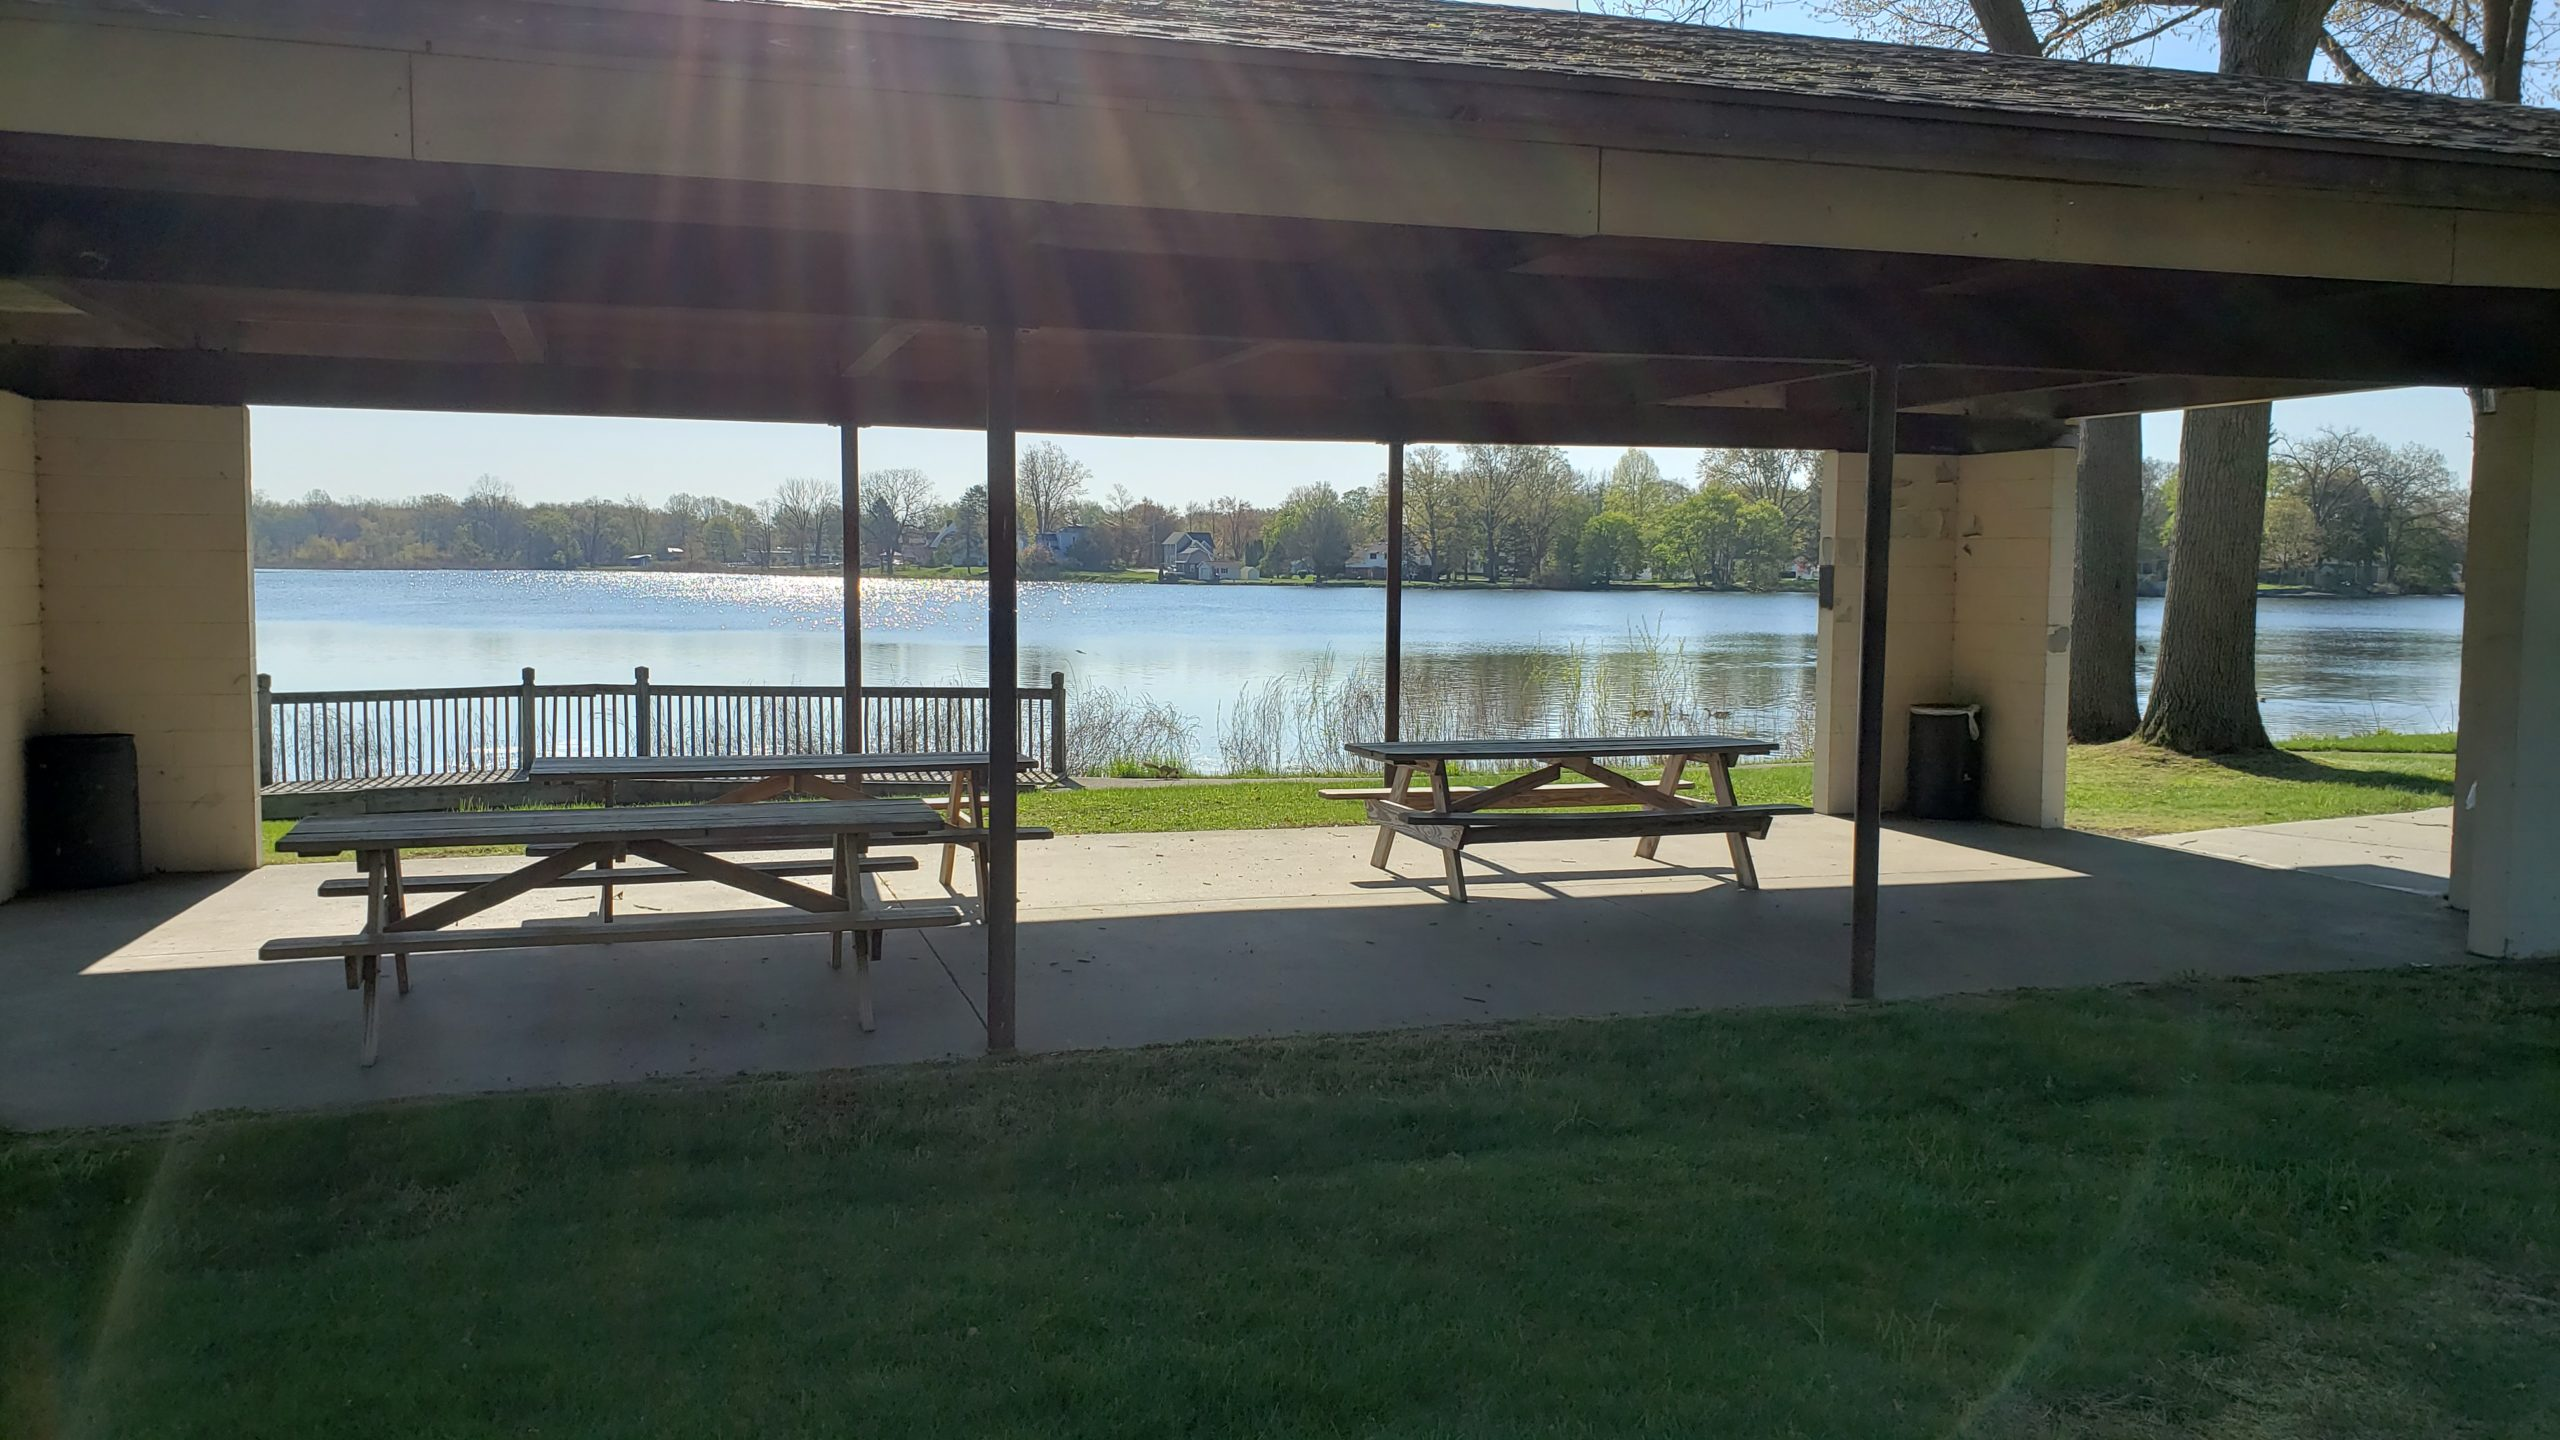 Sunset Lake picnic pavillion